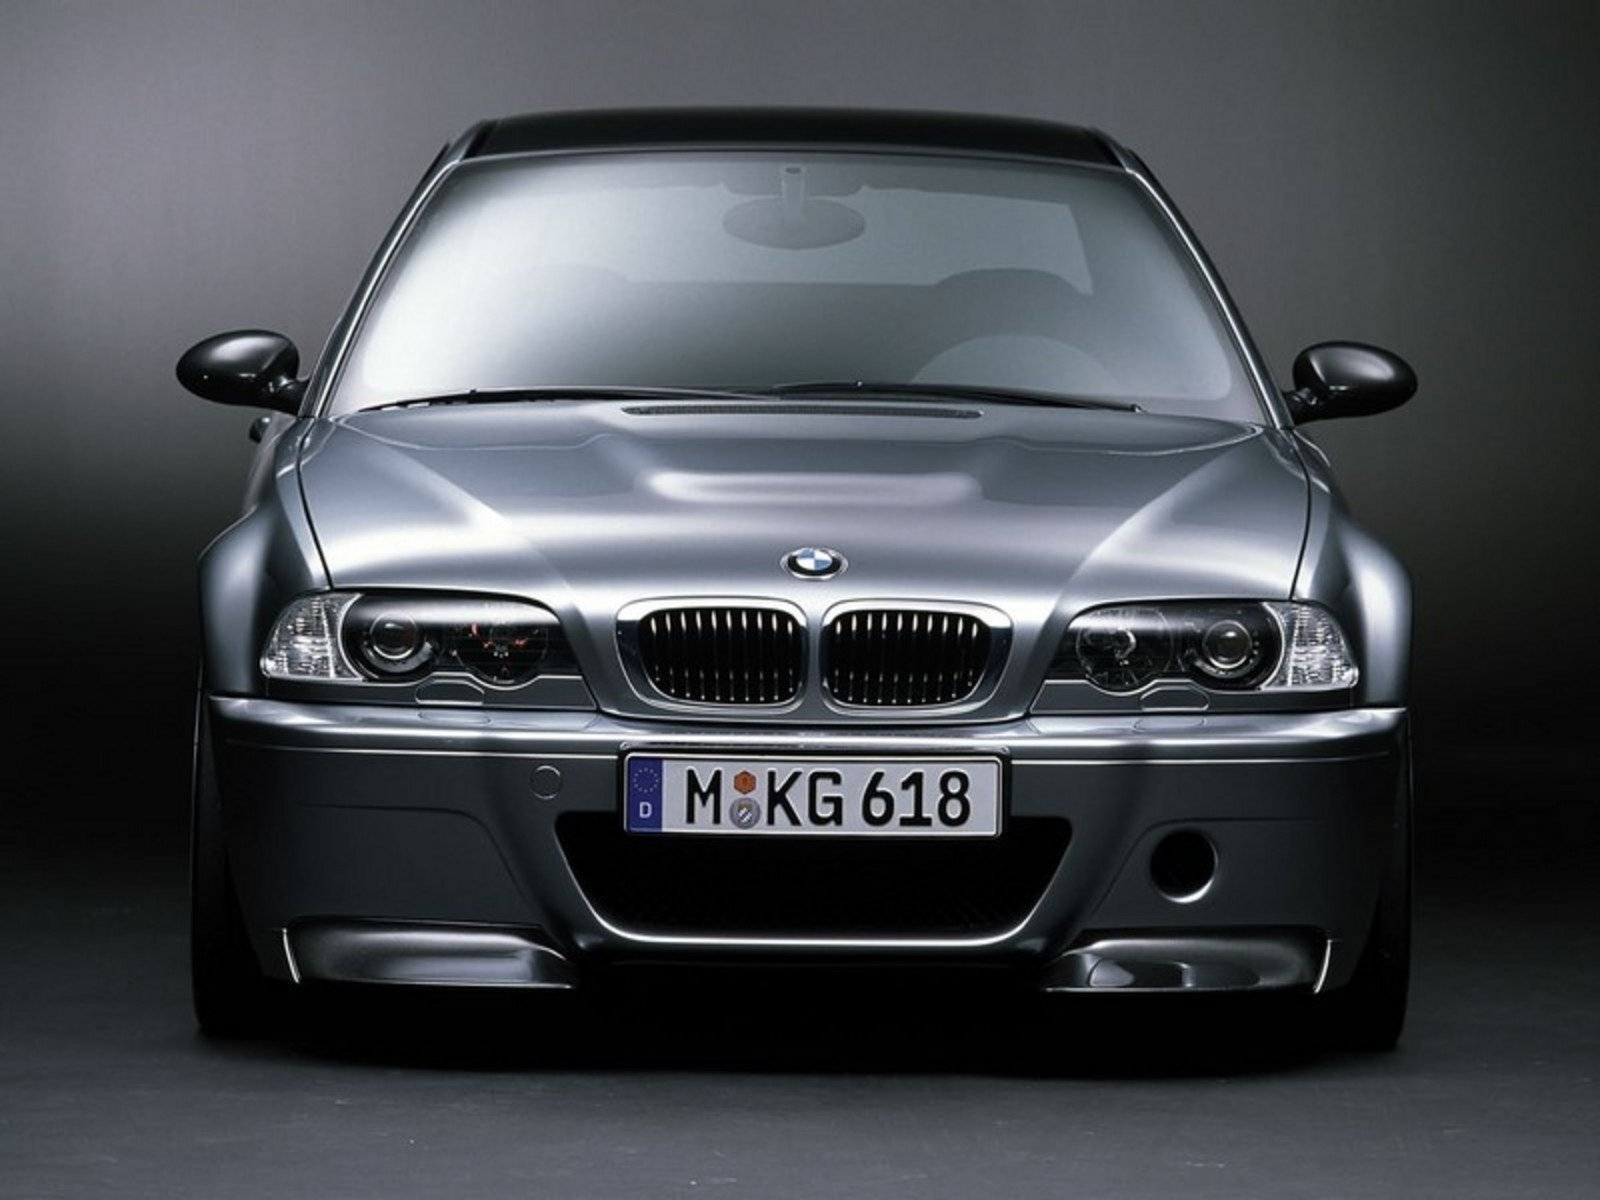 2000 bmw e46 m3 review picture 84222 car review top. Black Bedroom Furniture Sets. Home Design Ideas